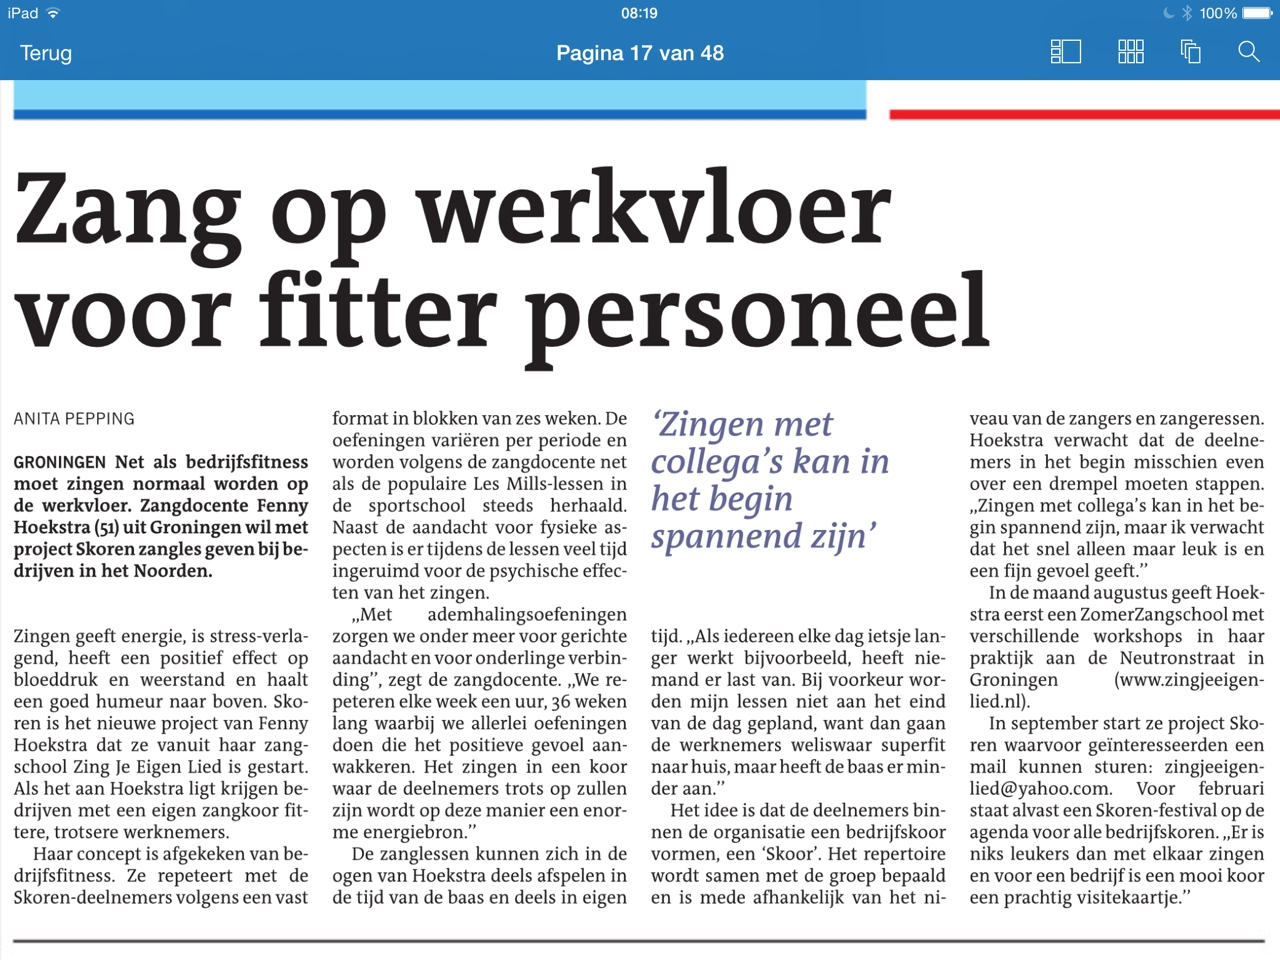 Article about singing at work (in Dutch)